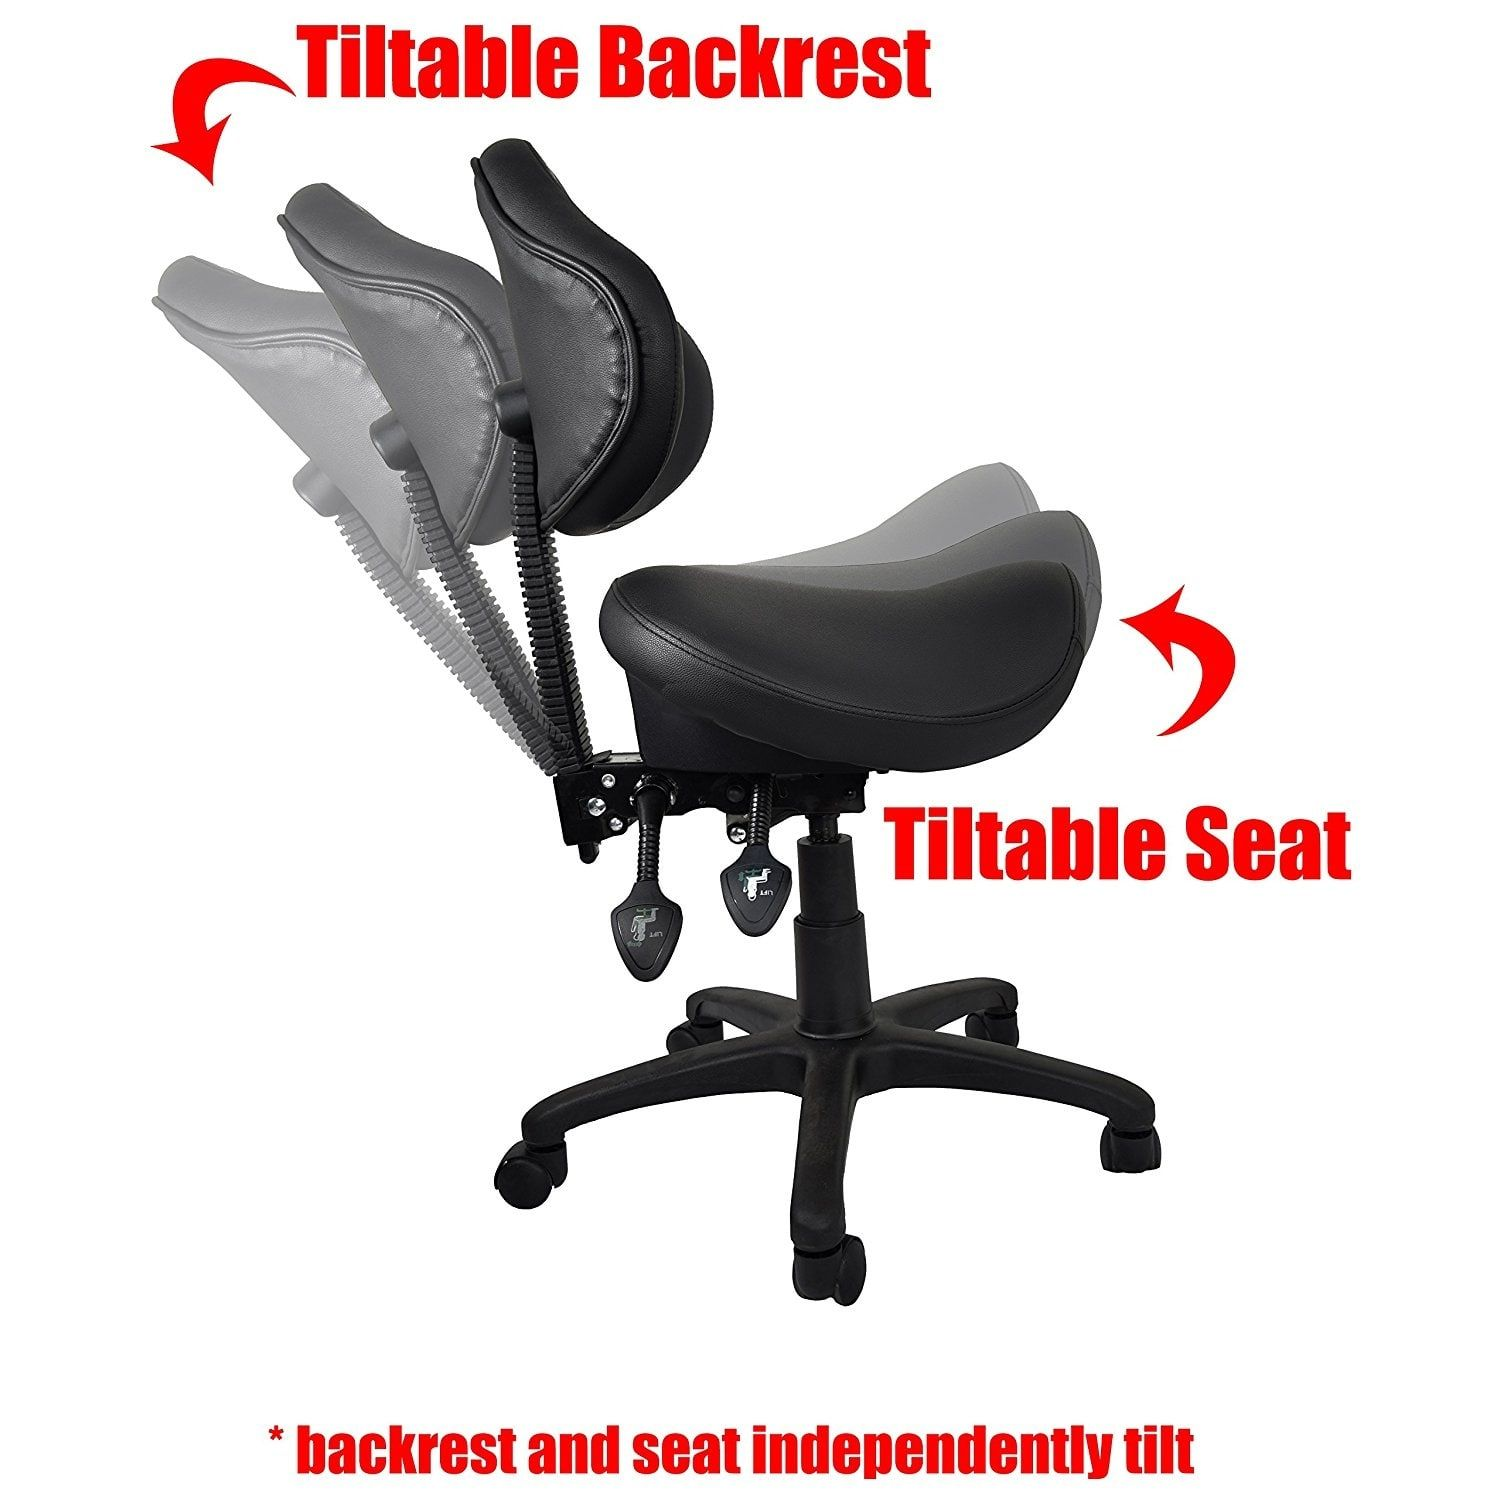 2xhome Ergonomic Adjustable Rolling Saddle Stool Chair with Back Support great for Home u0026 Office Exam Waiting Rooms u0026 More Black  sc 1 st  Pinterest & 2xhome Ergonomic Adjustable Rolling Saddle Stool Chair with Back ...